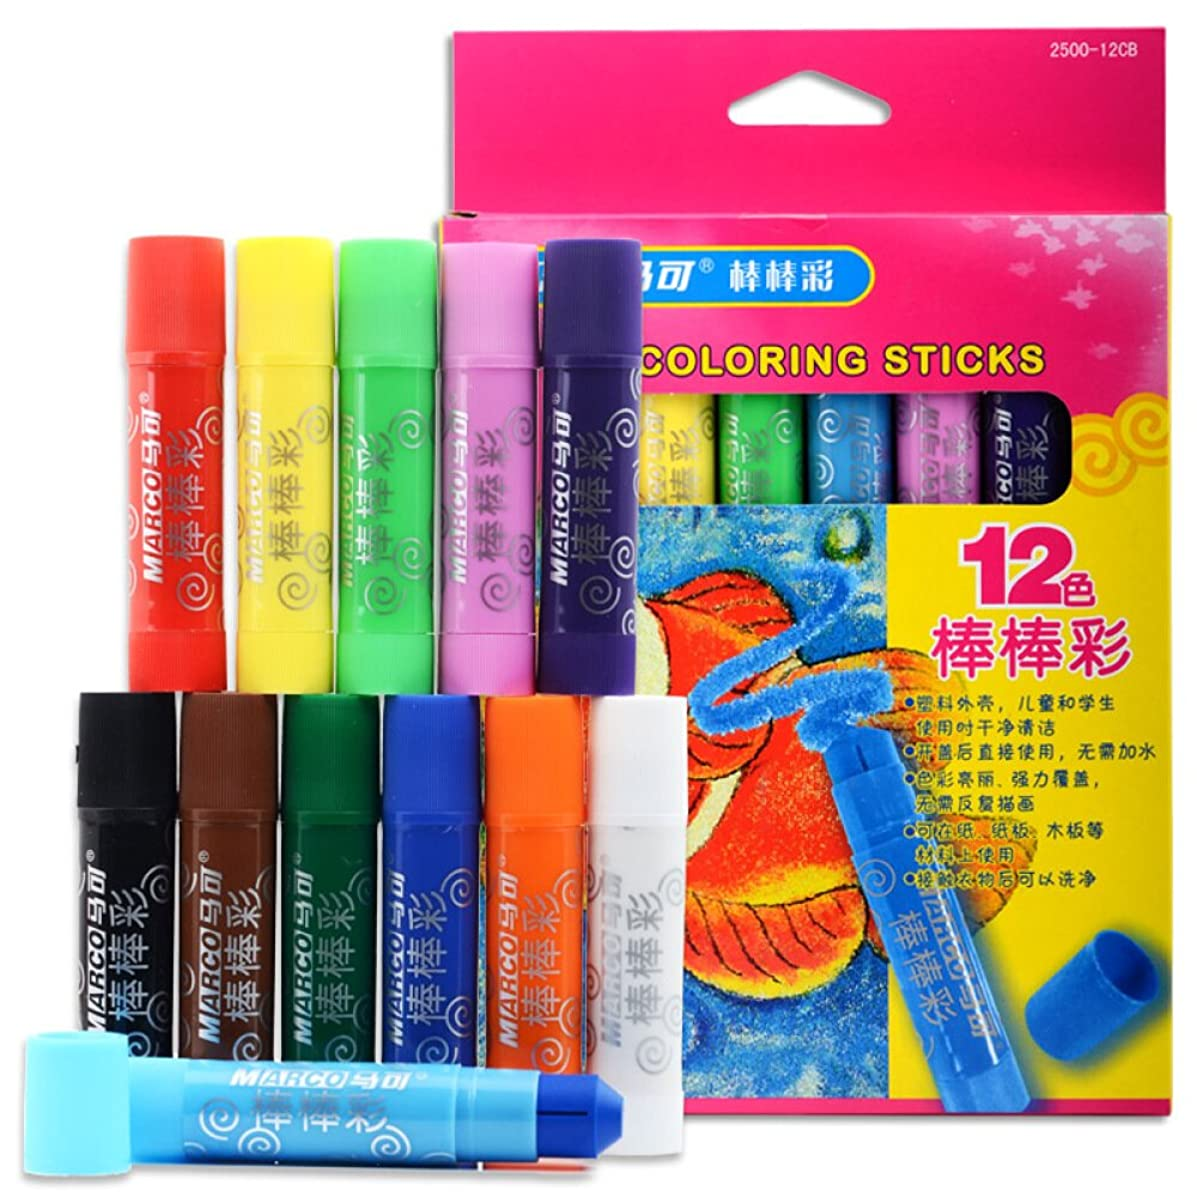 Non-toxic Super Oil painting sticks Set of 12 Colors, 1 Paint brush -Twistable, Bright and Washable